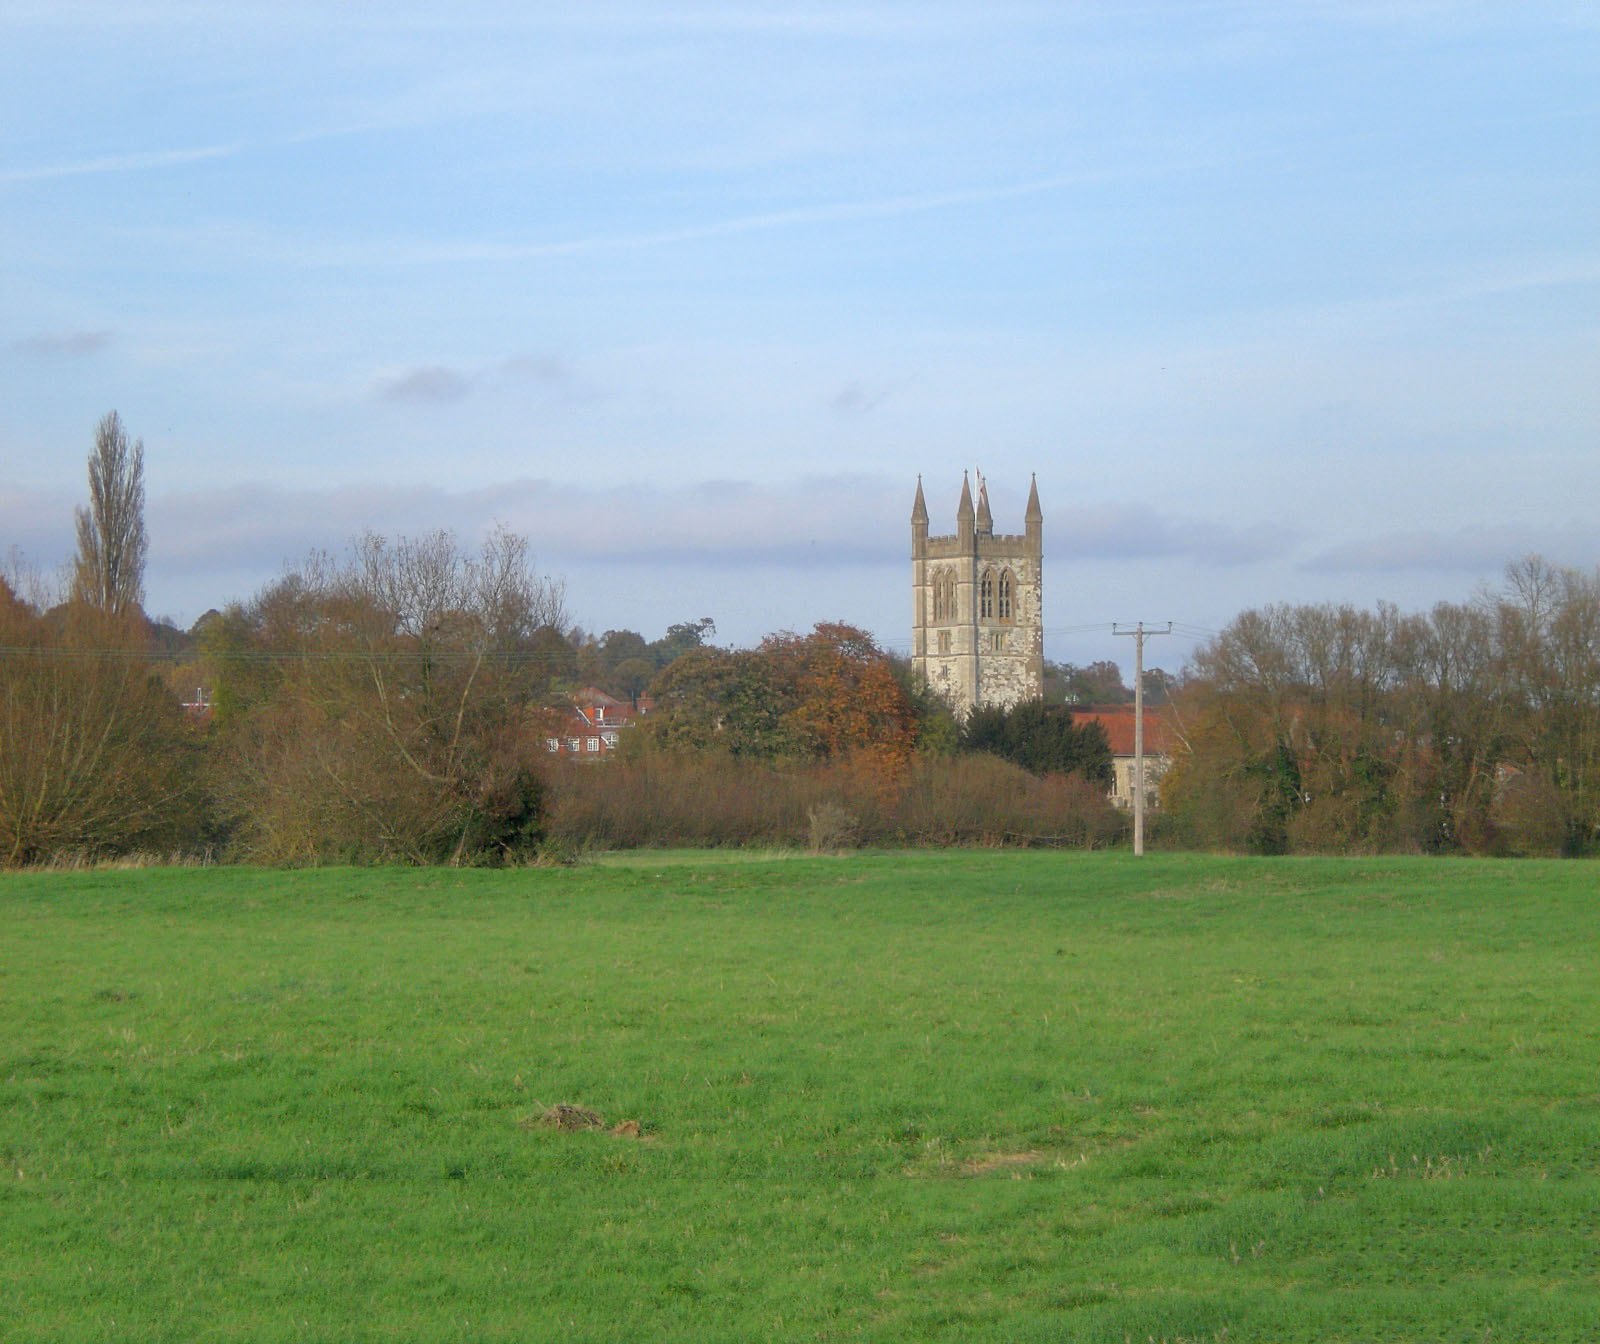 St Andrew's Church as seen from Bishop's Meadow in Farnham.